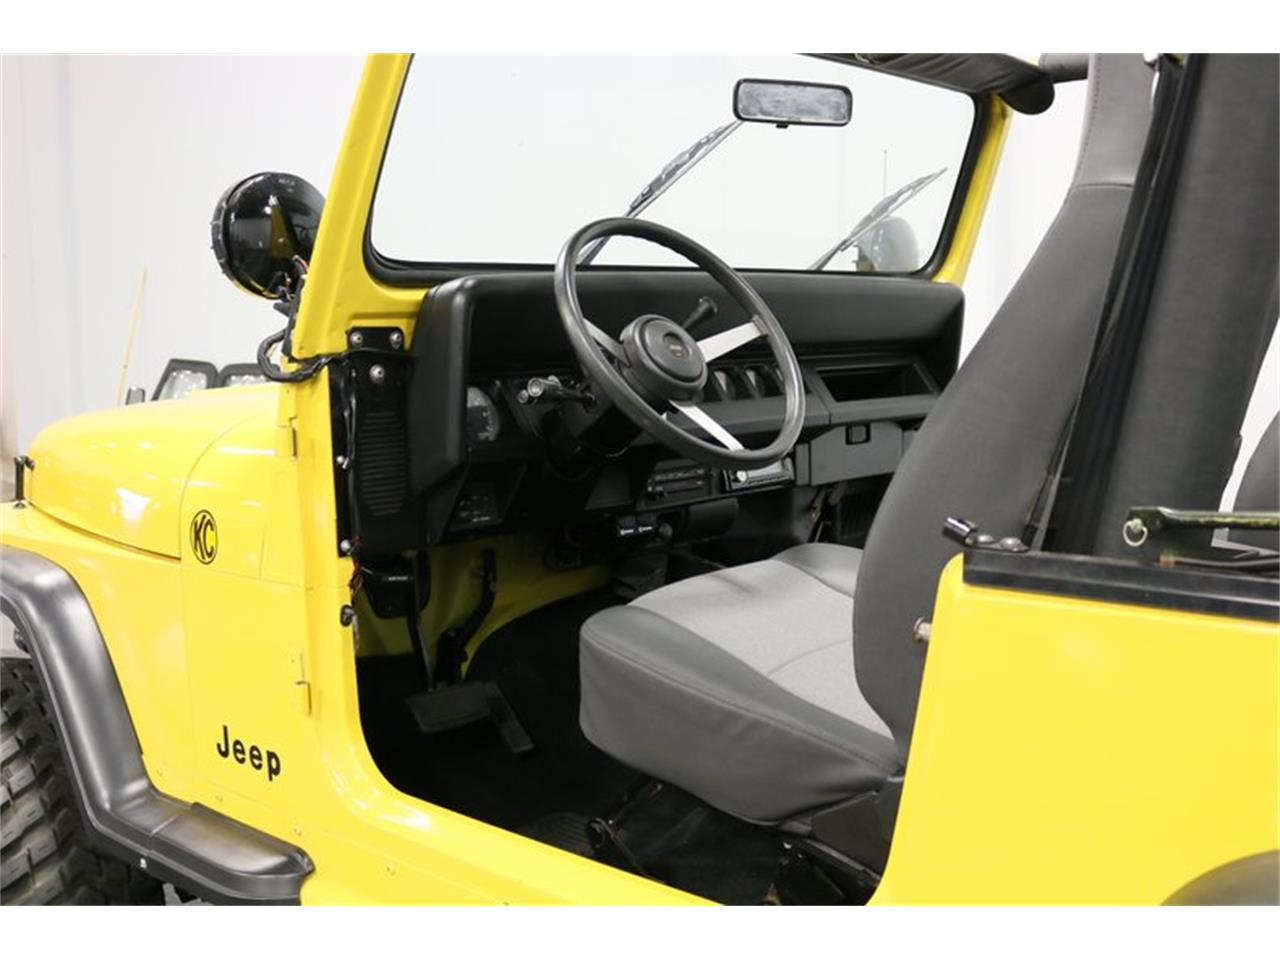 Large Picture of 1993 Jeep Wrangler located in Ft Worth Texas Offered by Streetside Classics - Dallas / Fort Worth - P701